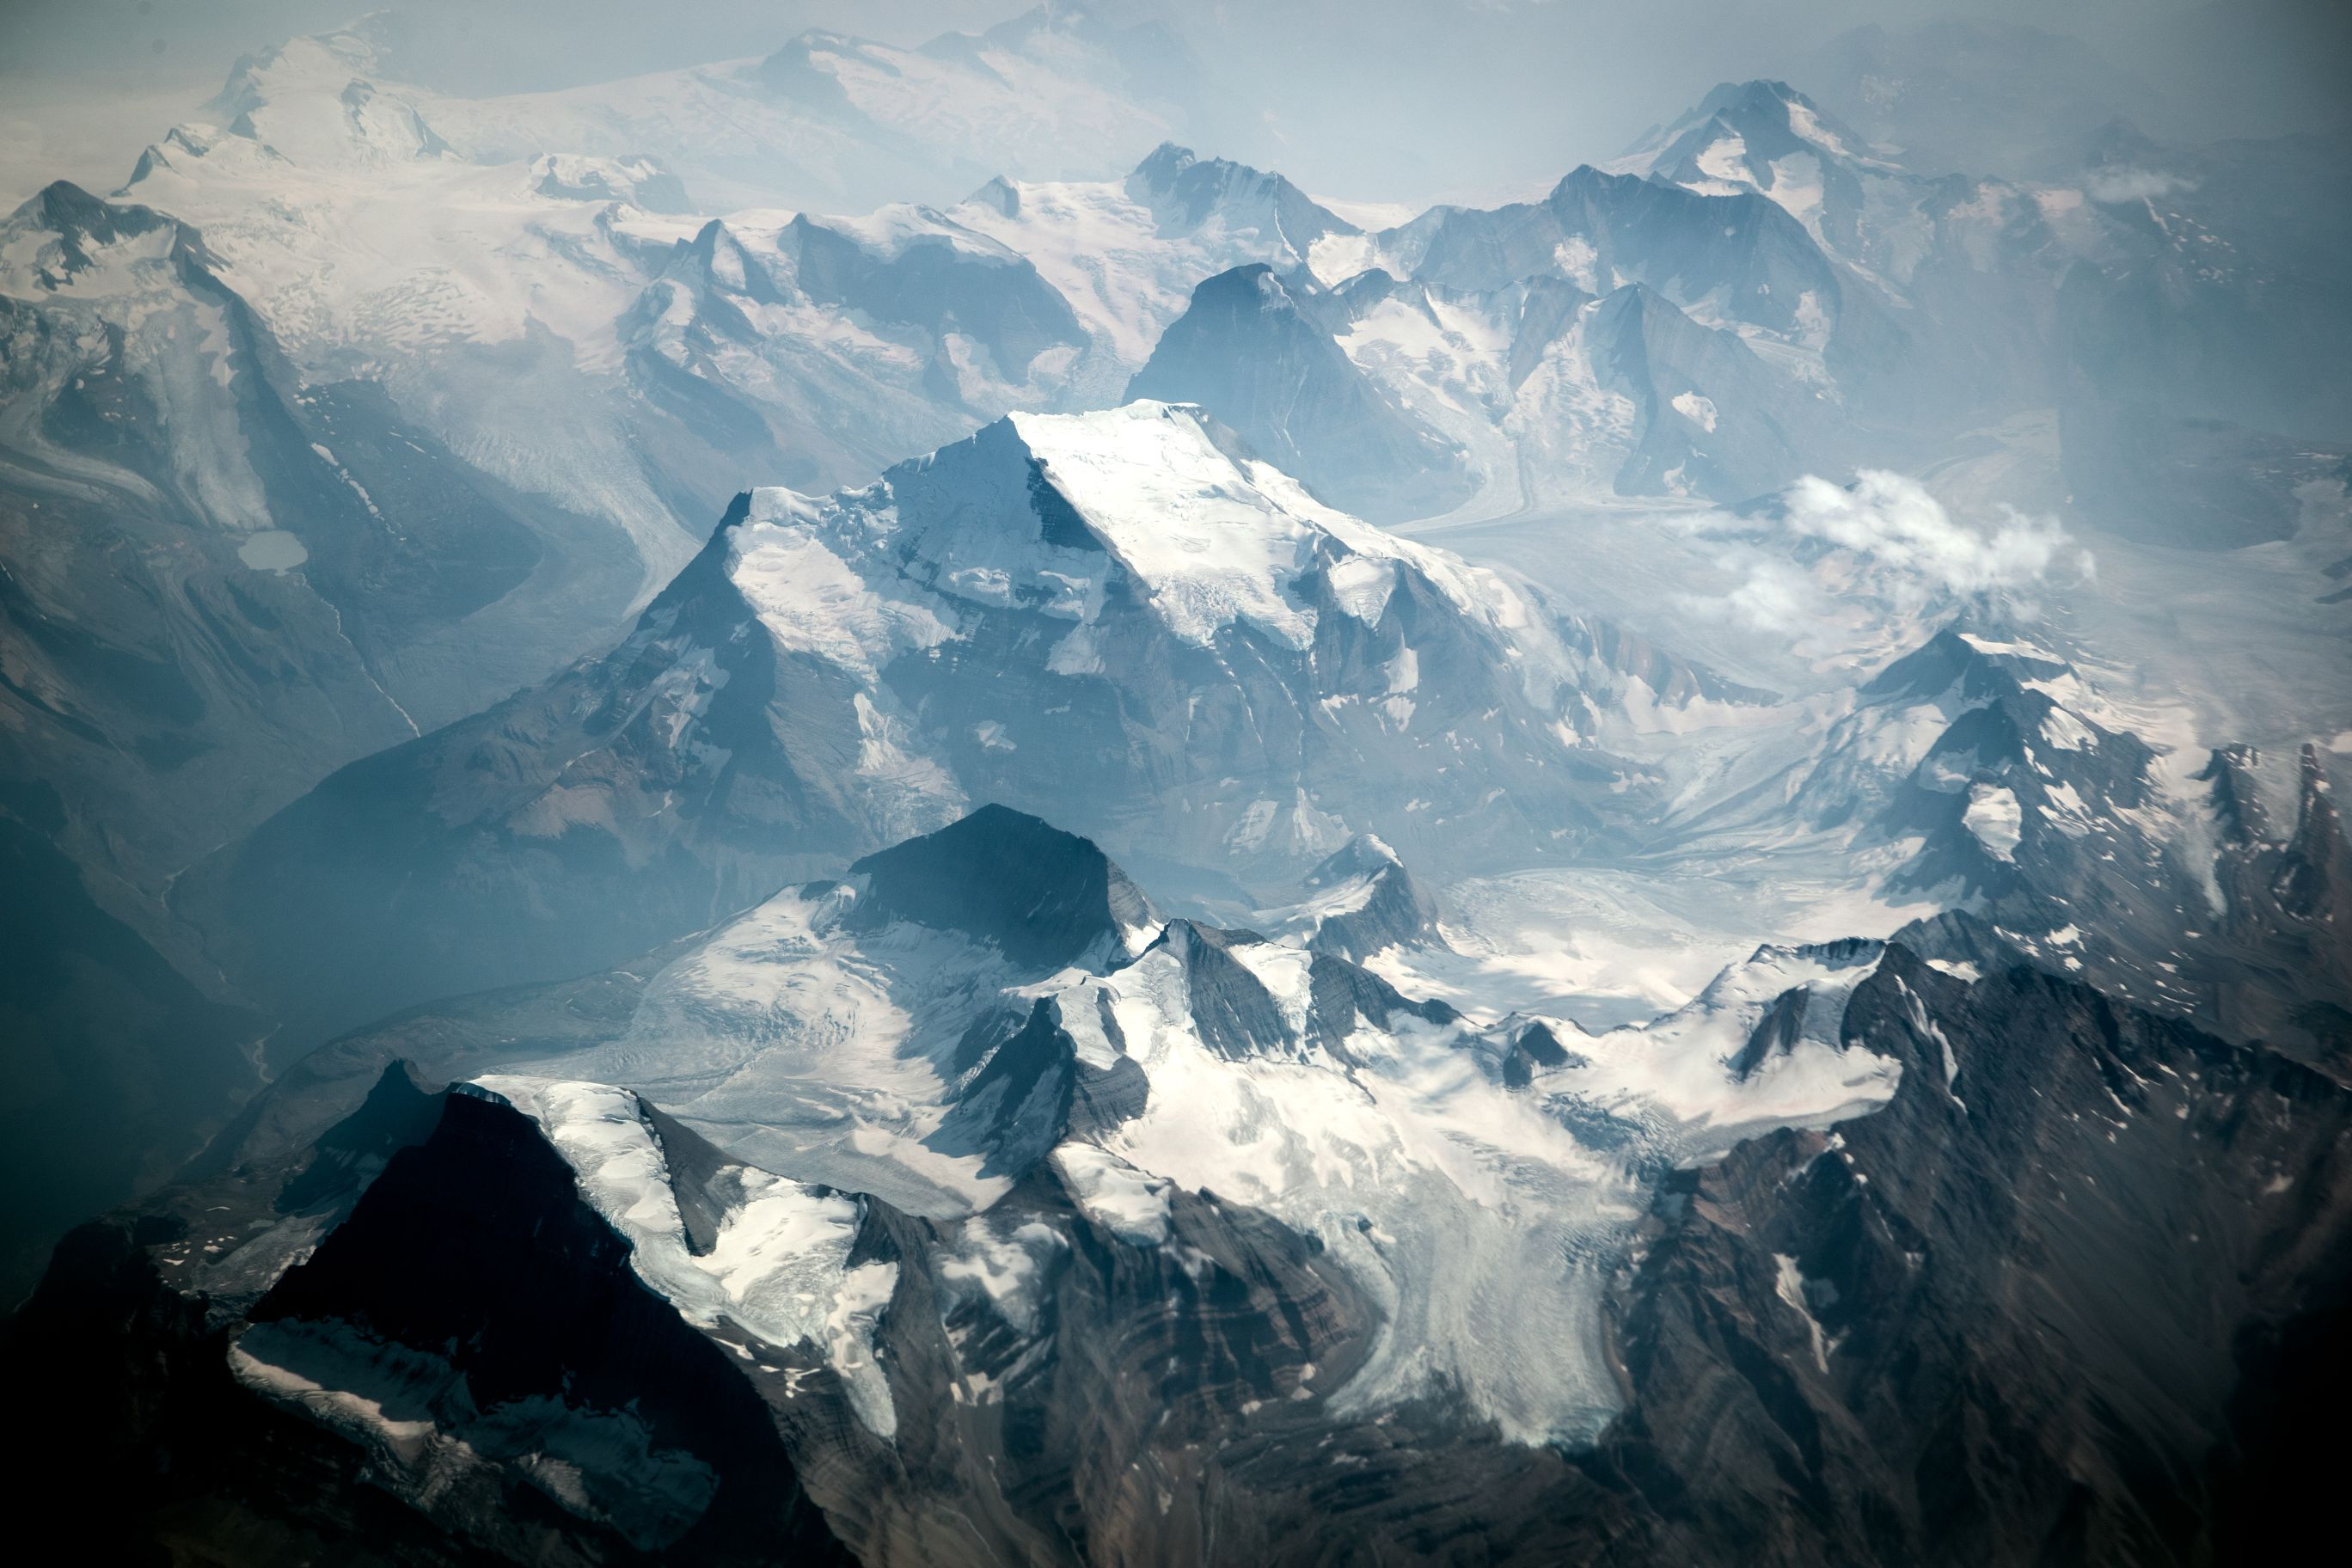 Aerial shot of rocky and snowy mountain peaks.